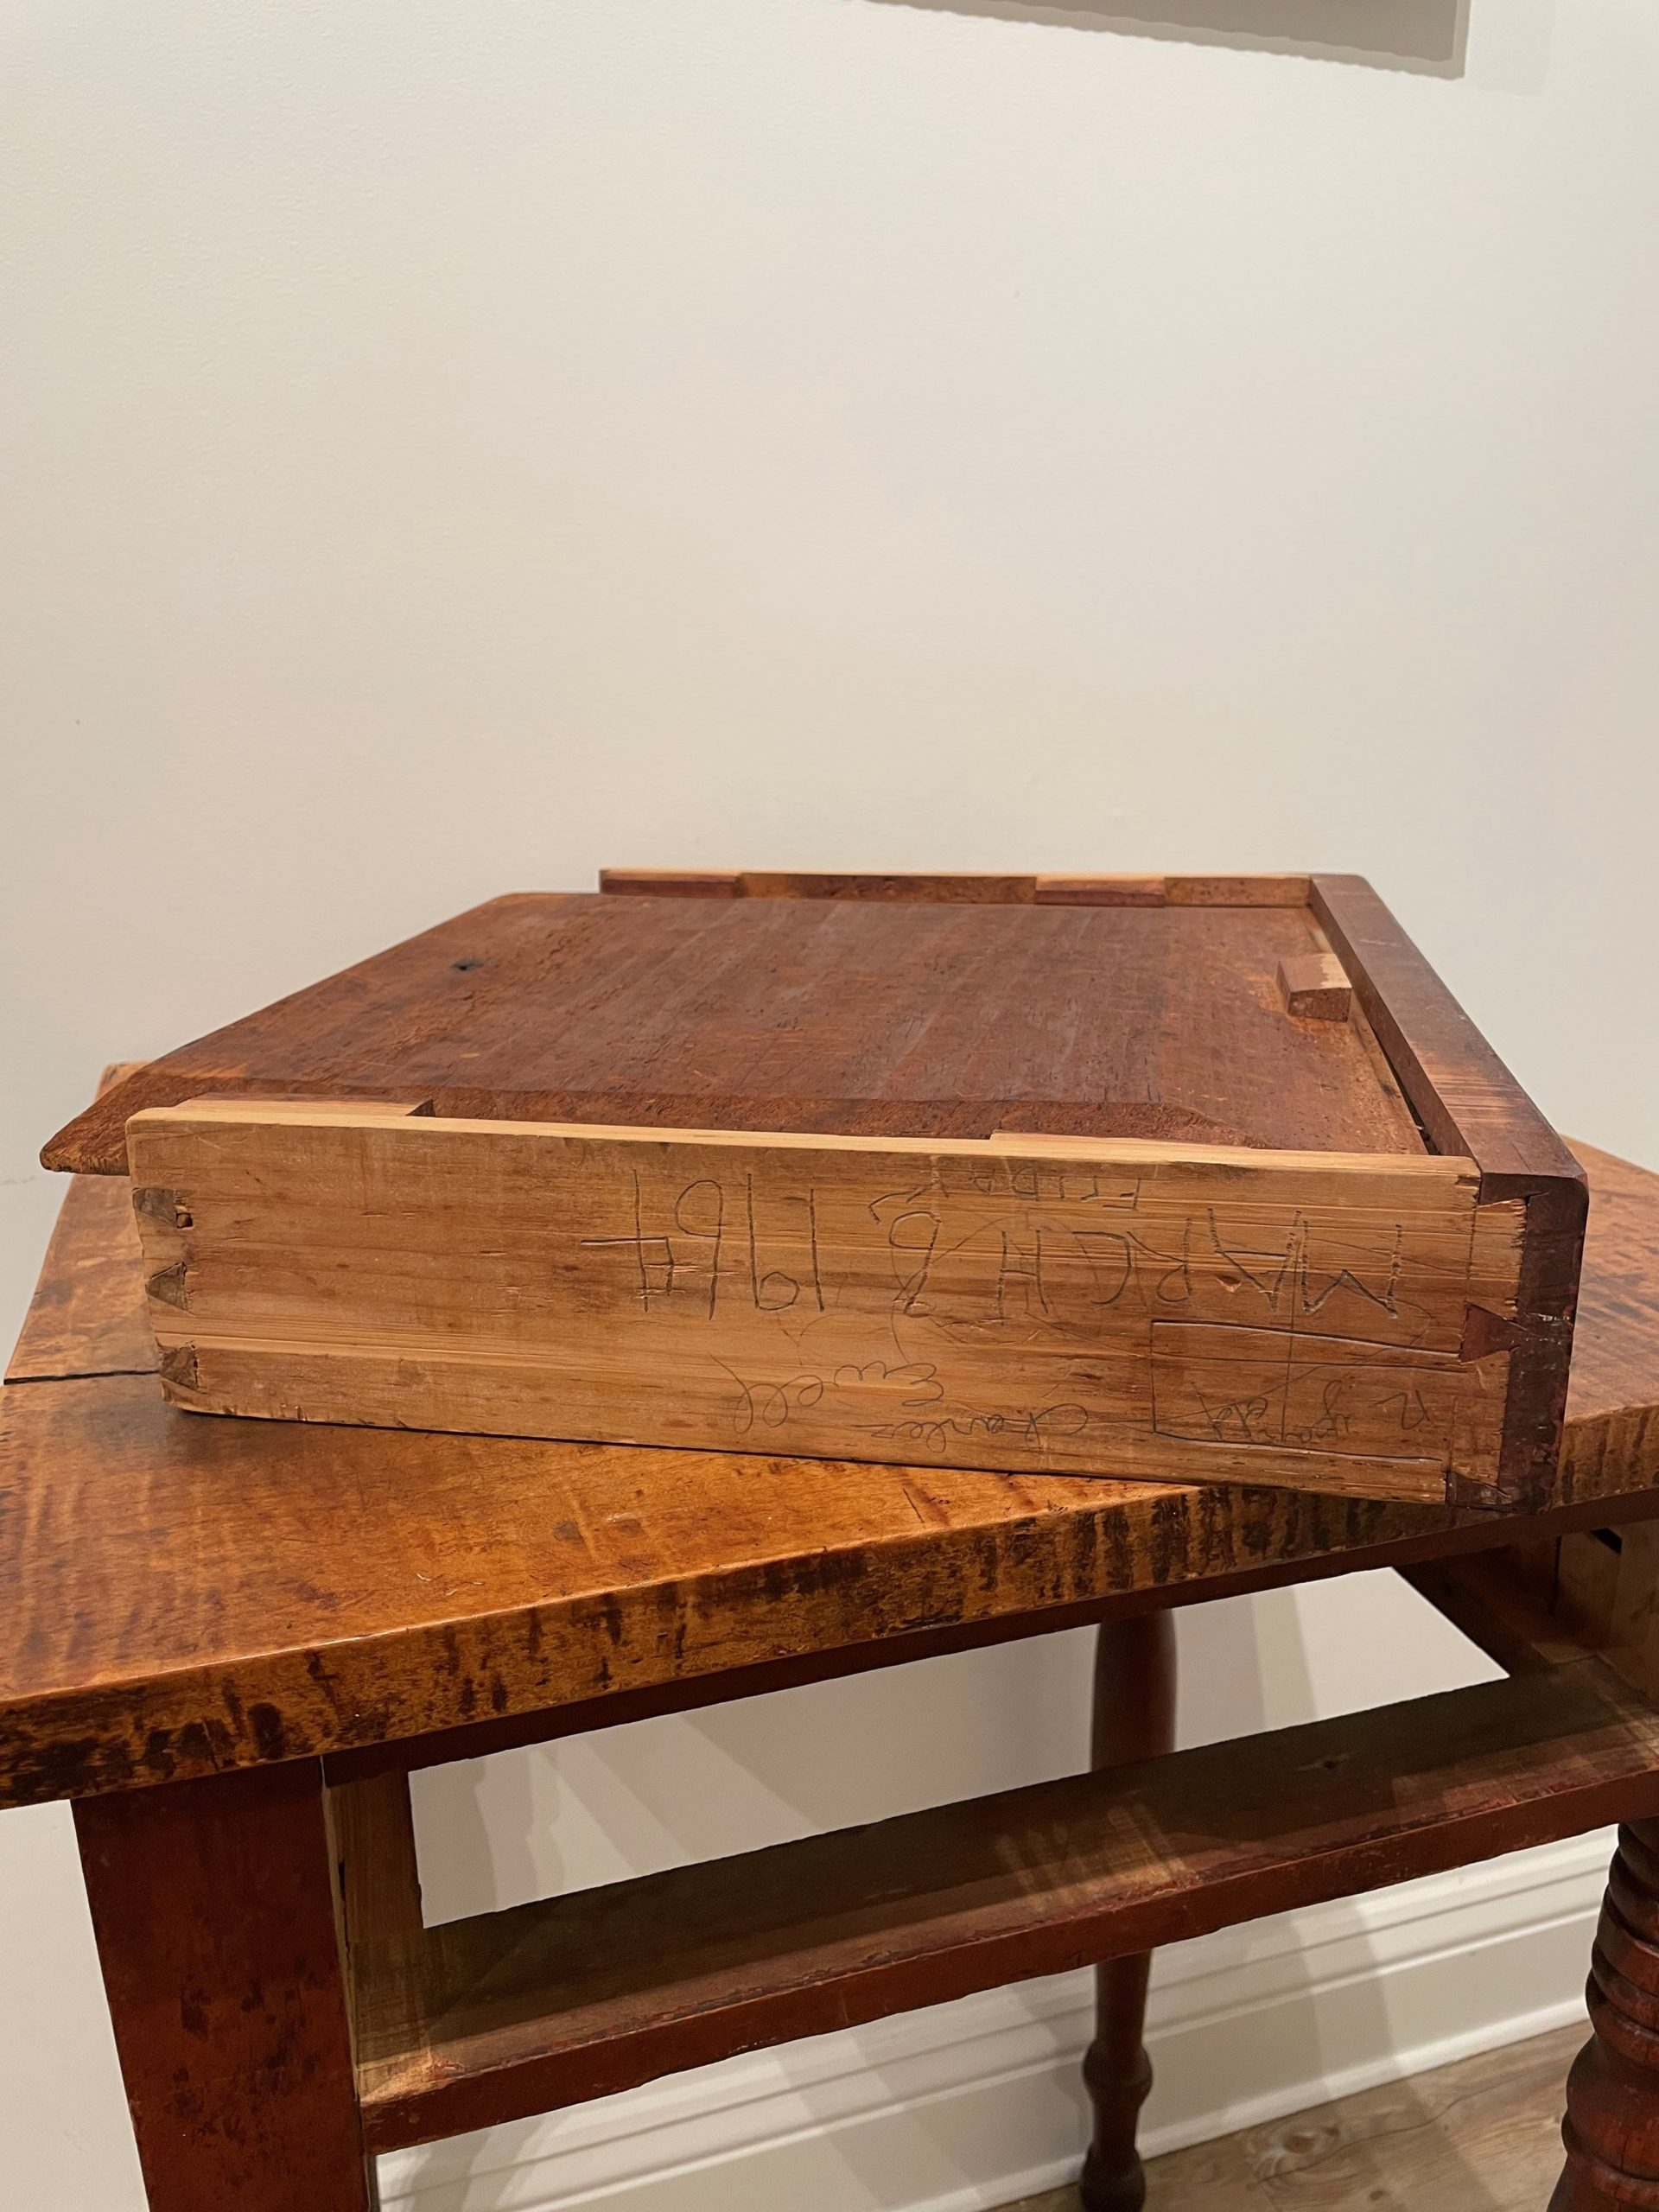 red painted figured maple side table rel=